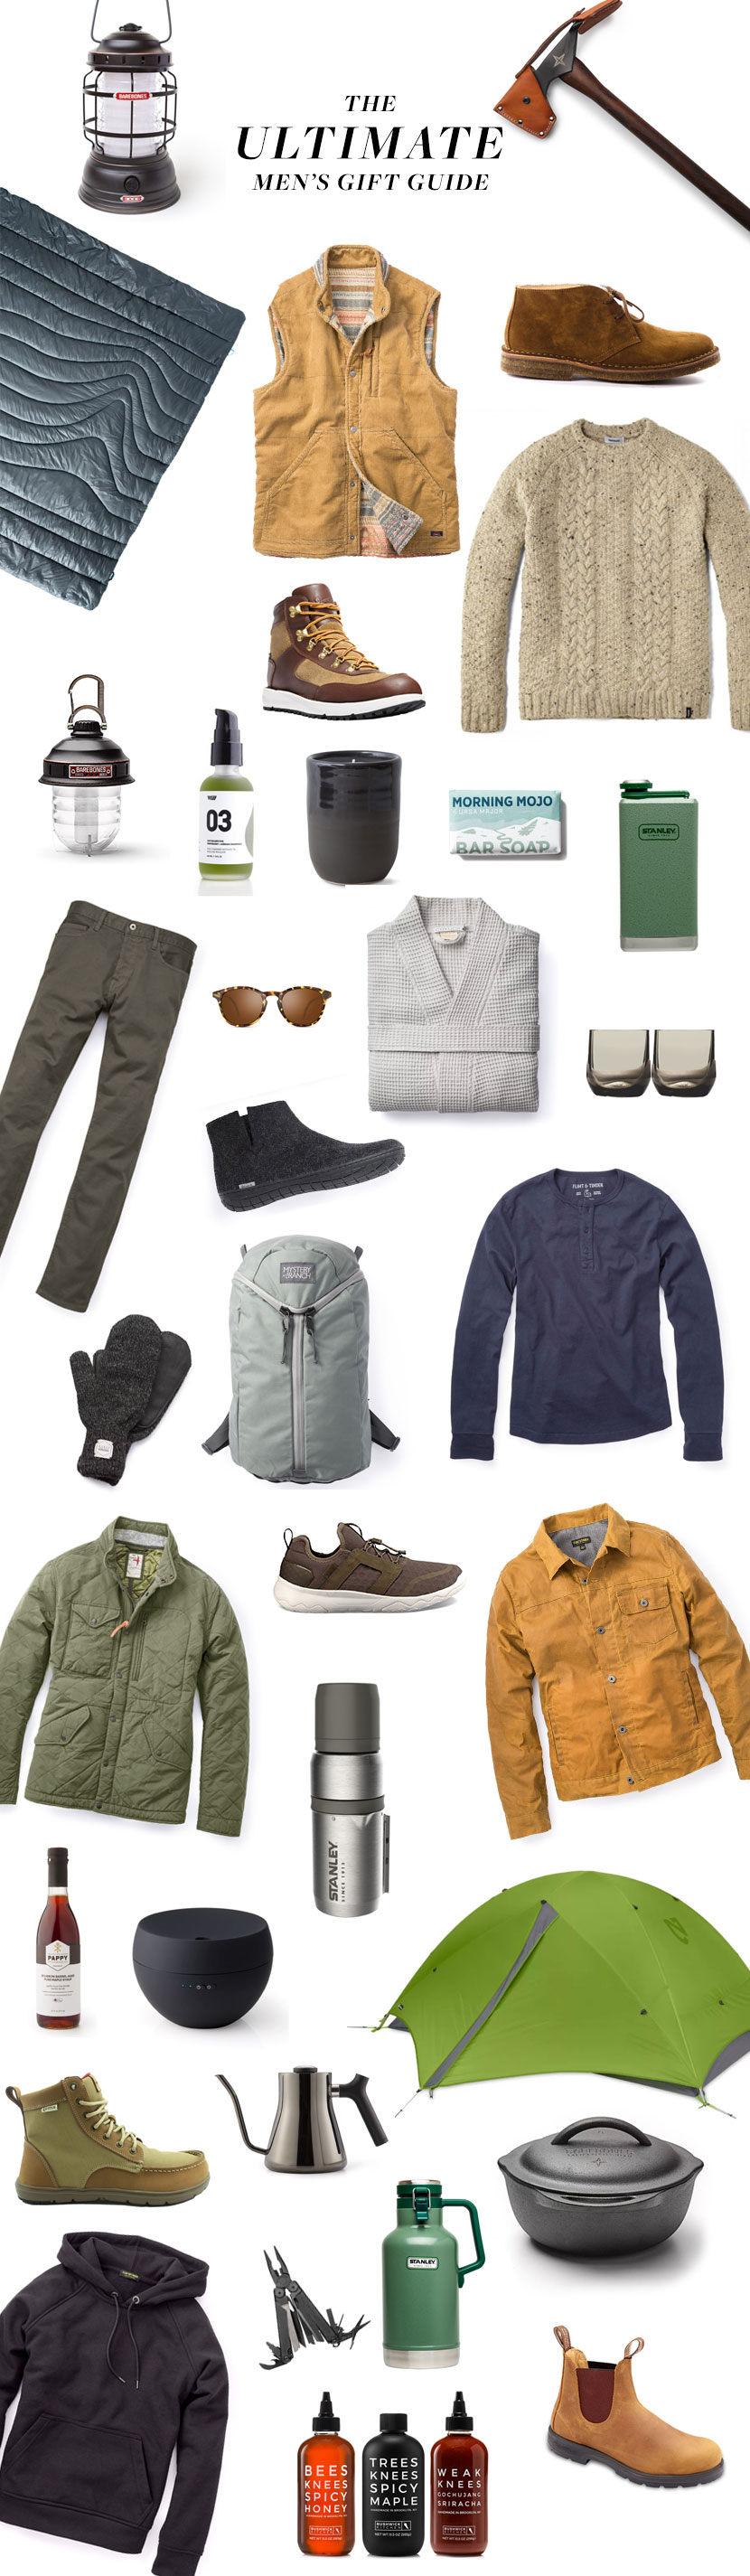 The Ultimate Men's Gift Guide in partnership with Huckberry. Focusing on quality and many American Made goods for gifts for any guy in your life.